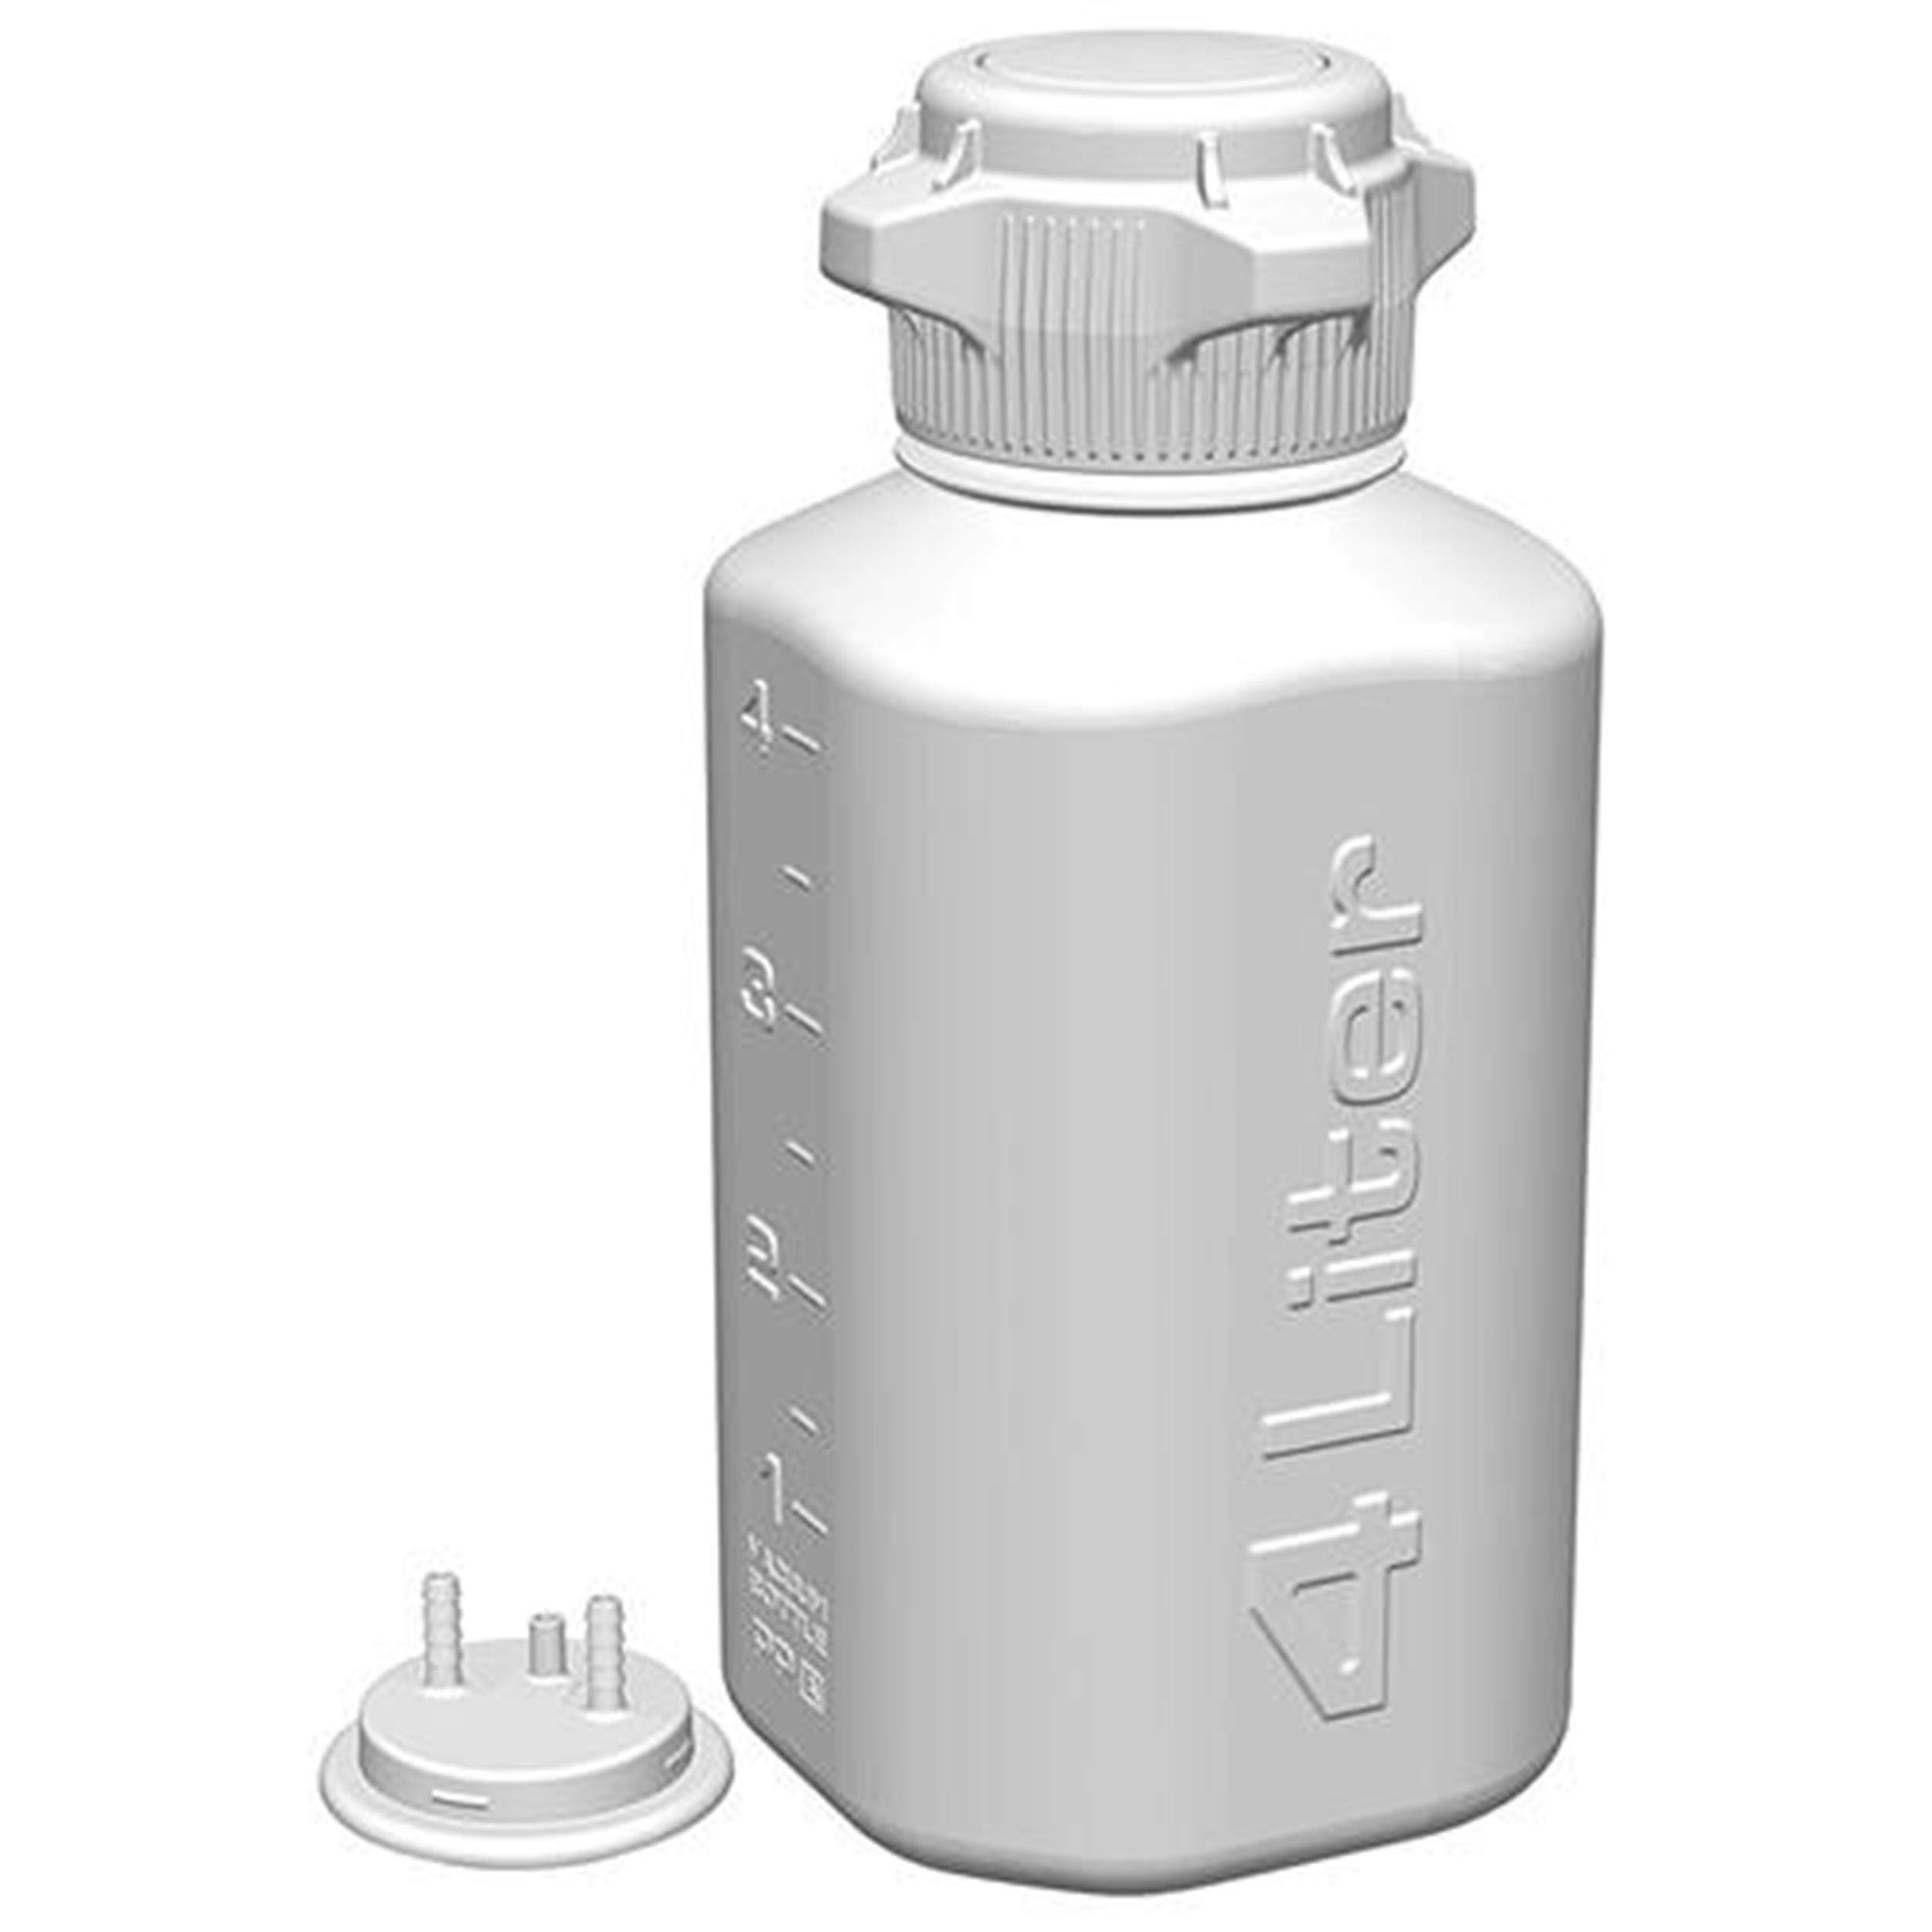 Heavy Duty Autoclavable Polypropylene Vacuum Bottle, 4L, with 83mm (83B) Tangle Free VersaCap, Two 1/4 Inch Hose Barbs and Sealable Vent Port